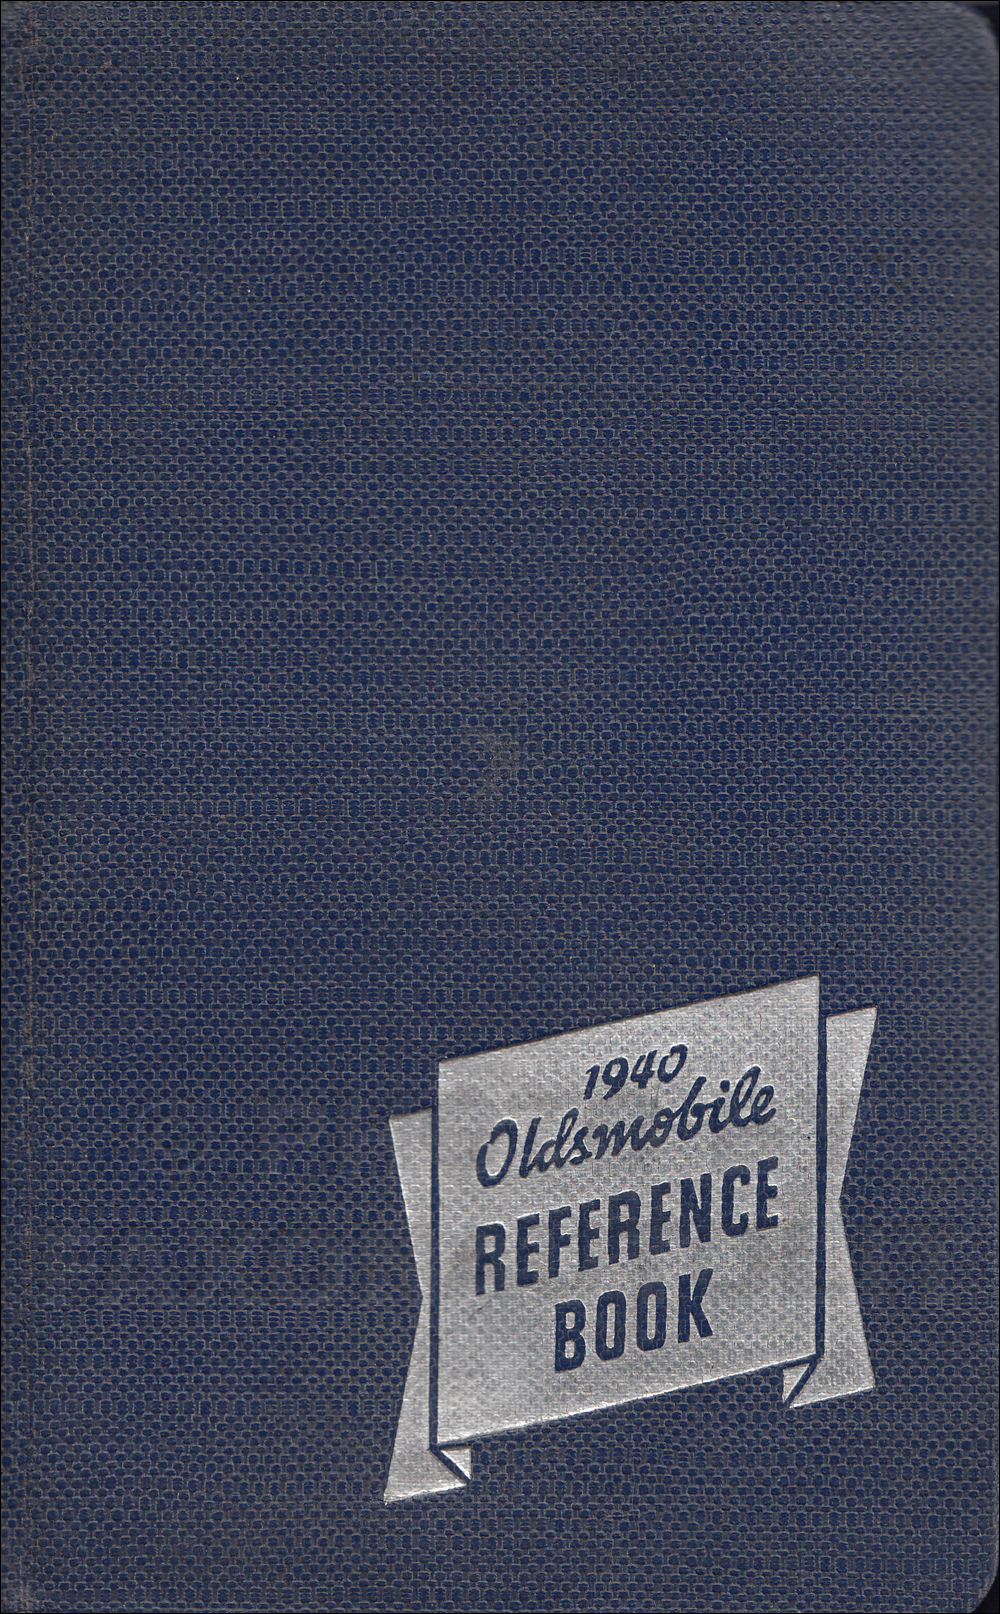 1940 Oldsmobile Facts Book Original